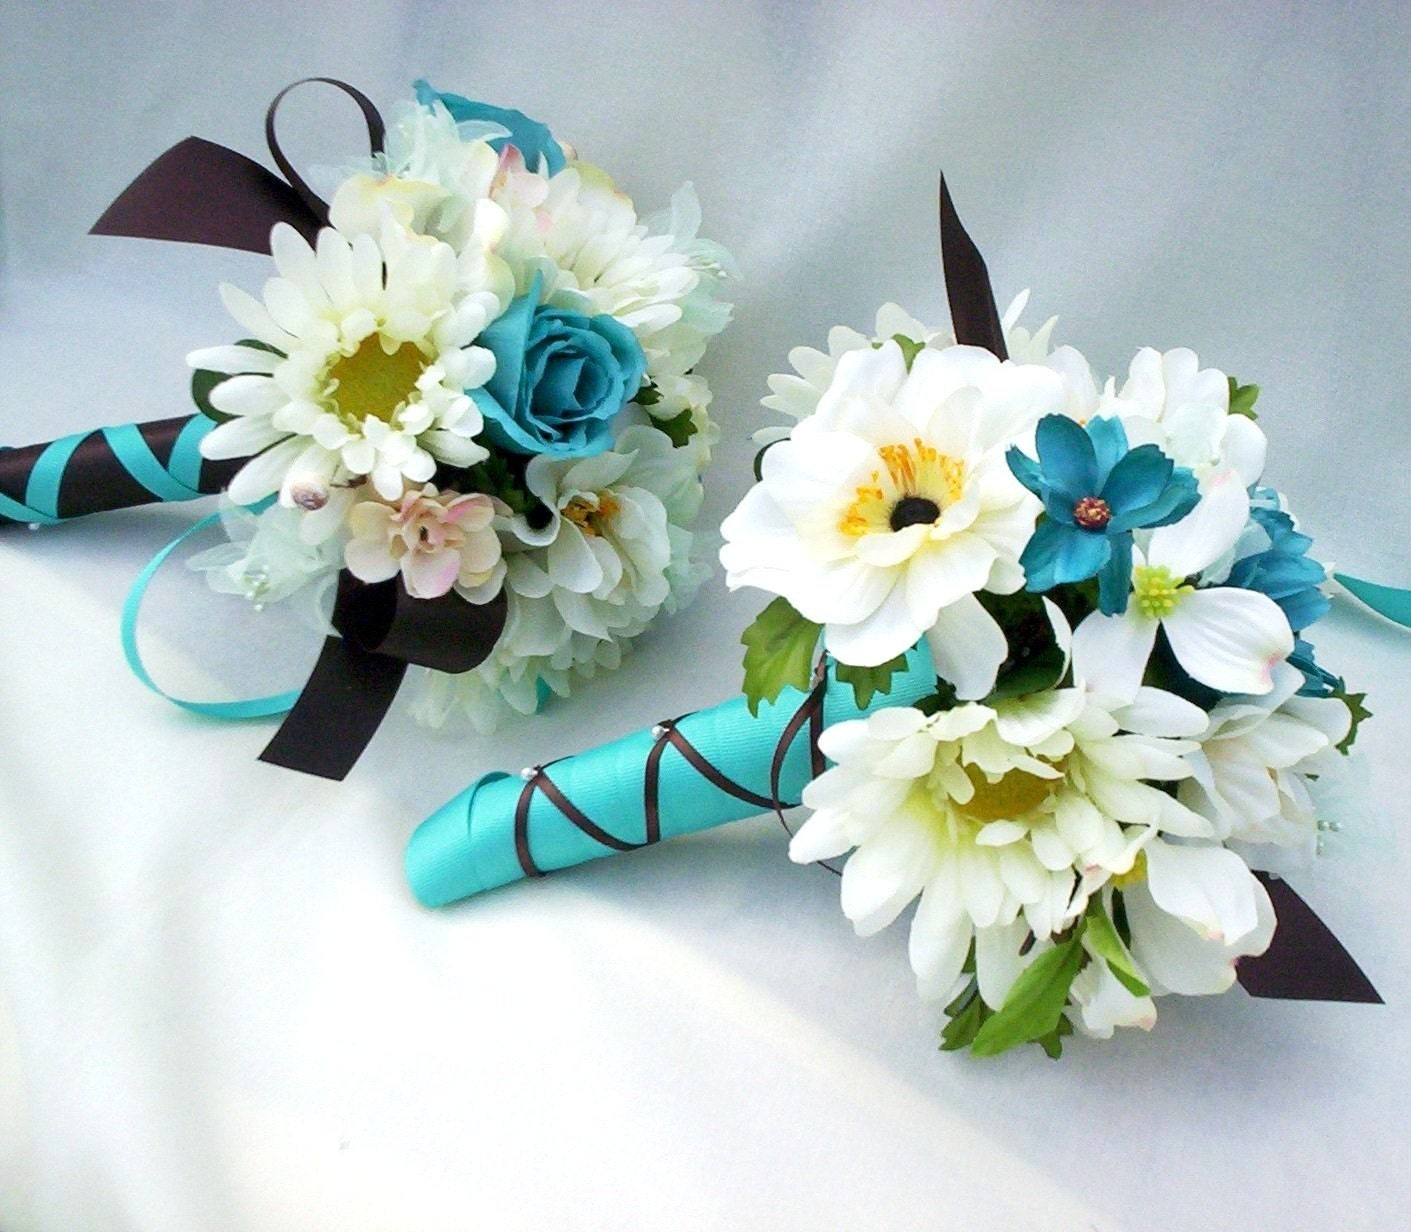 turquoise teal silk wedding flowers custom made to order. Black Bedroom Furniture Sets. Home Design Ideas